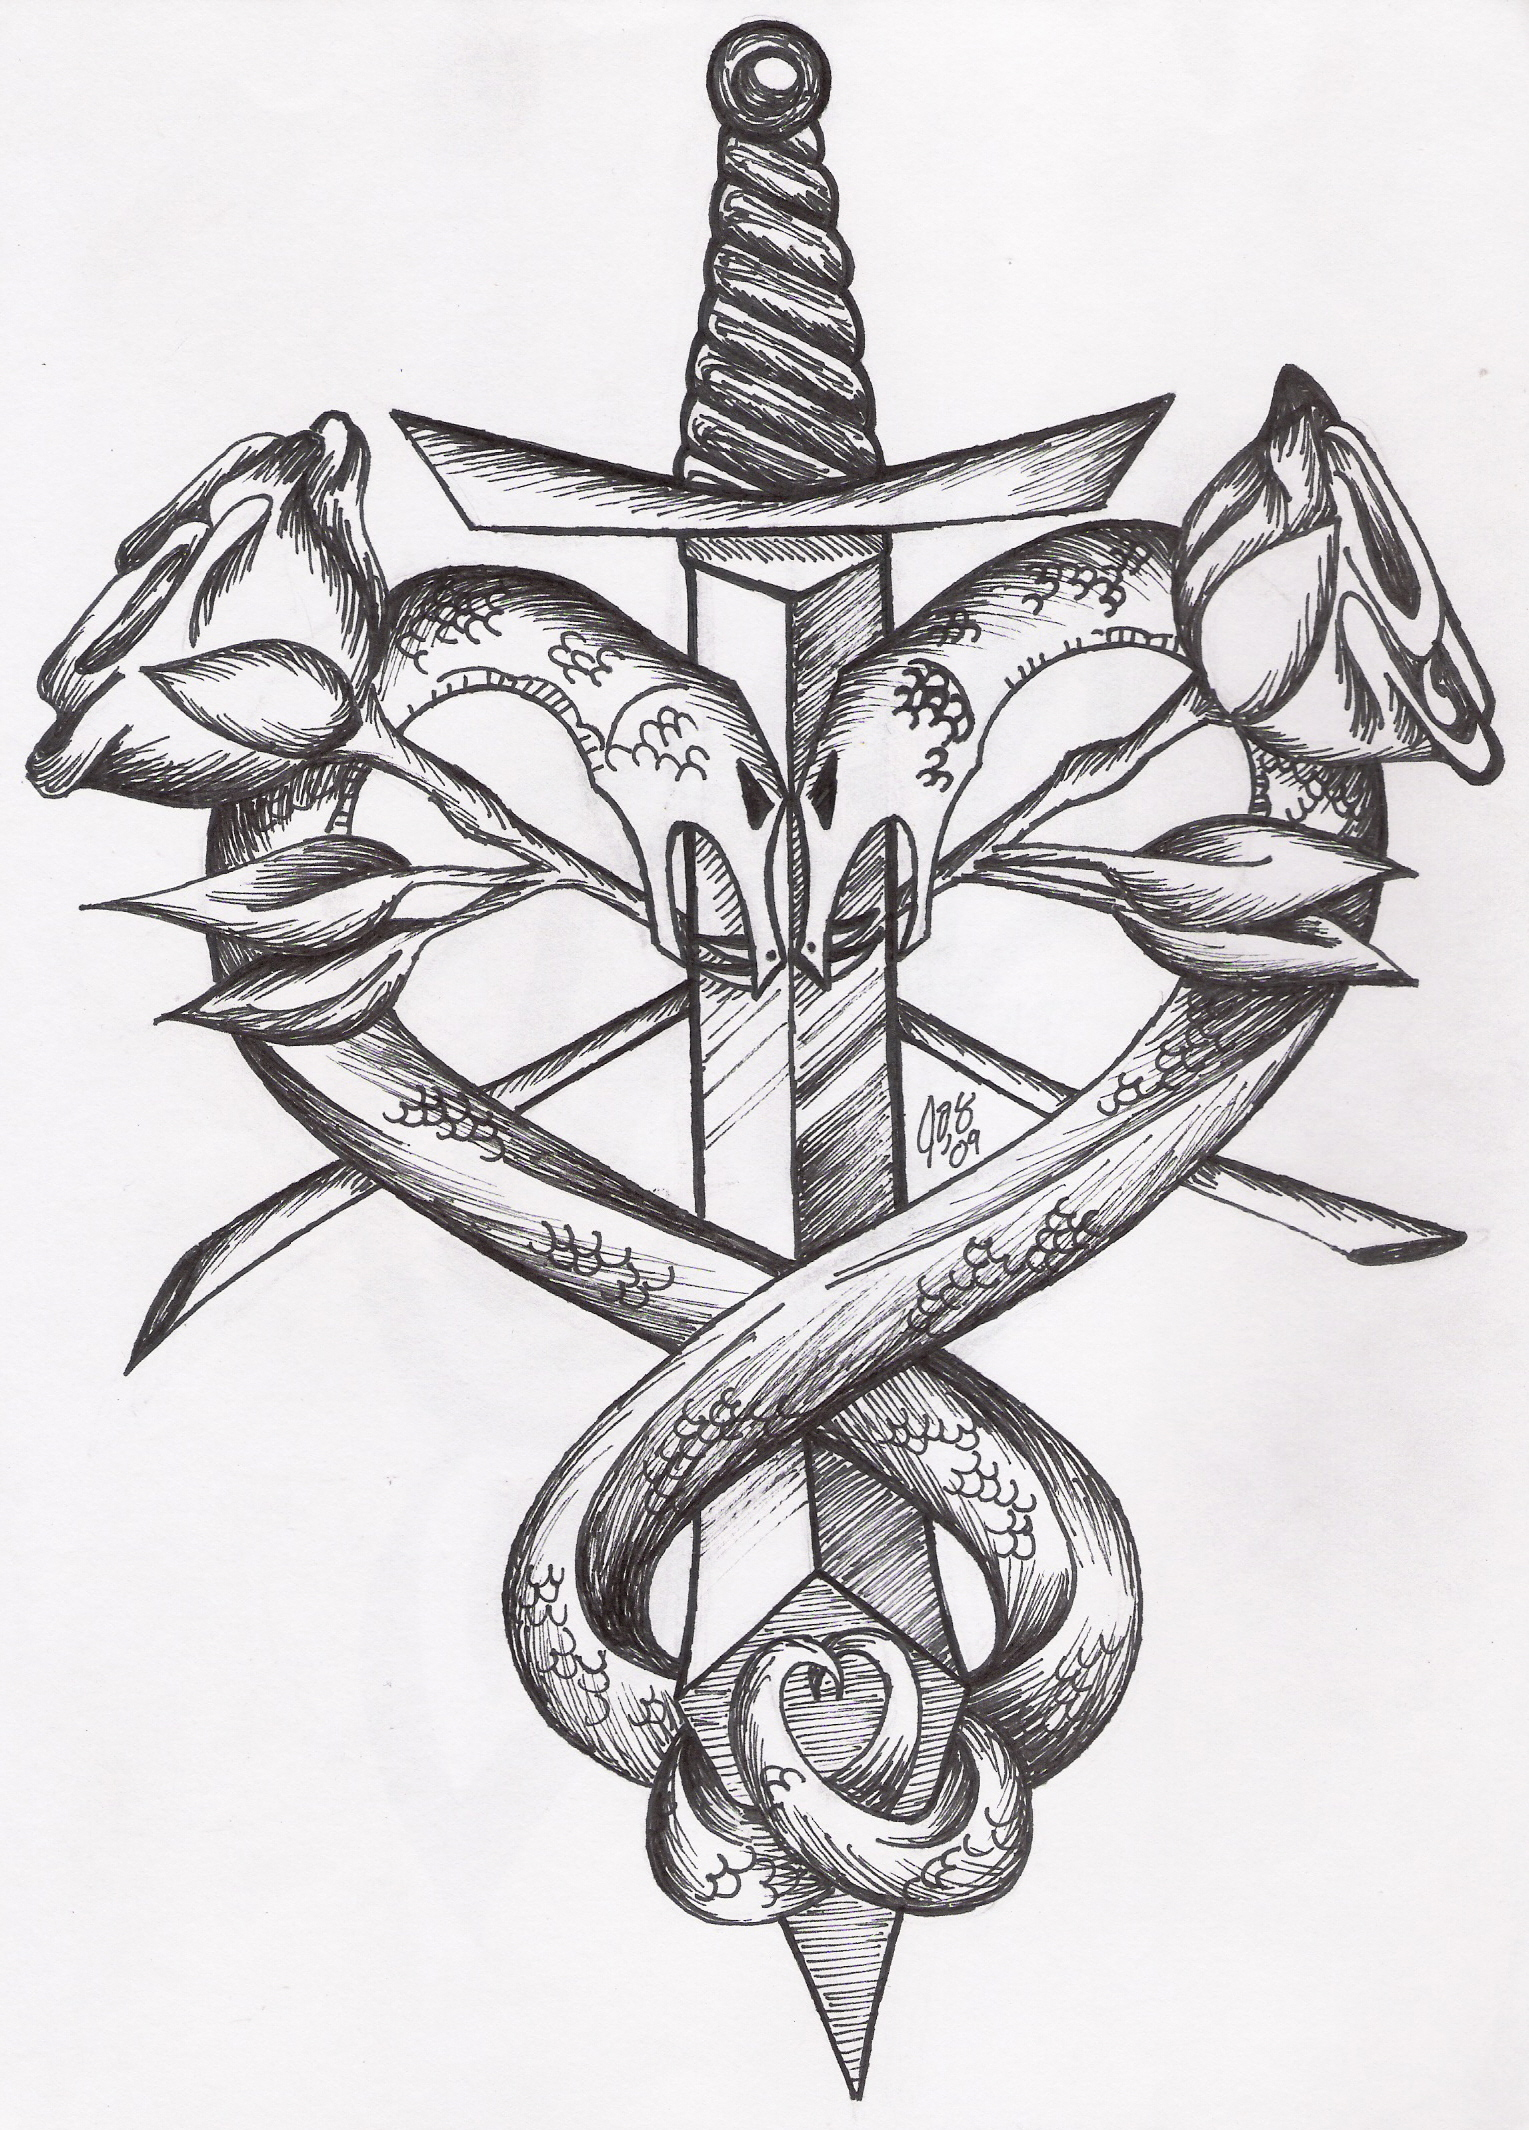 Old school tattoo dagger through heart stock photos image - Twisted Serpent Tattoo By Egslonelyshadow Image